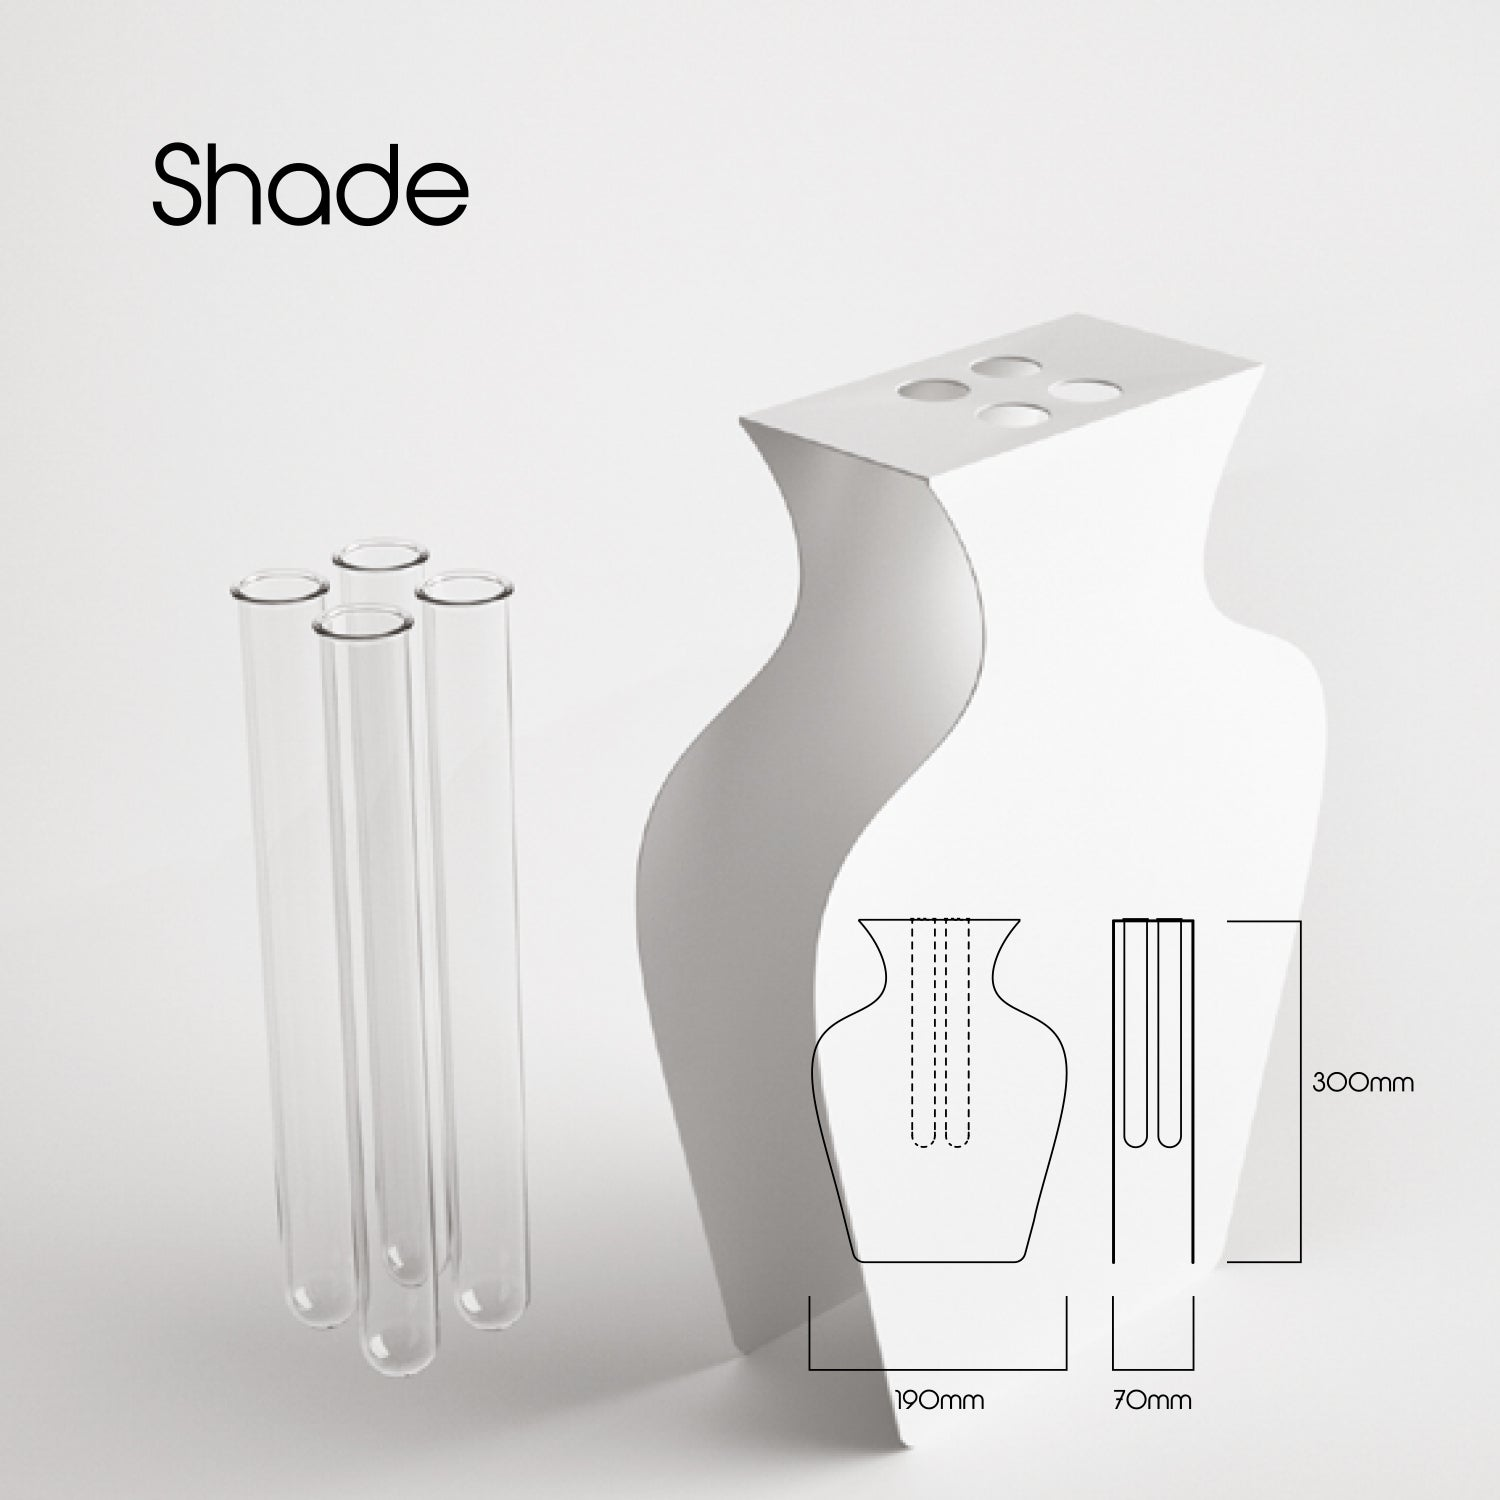 Shade-Mini Shade NATURE FIRE 004